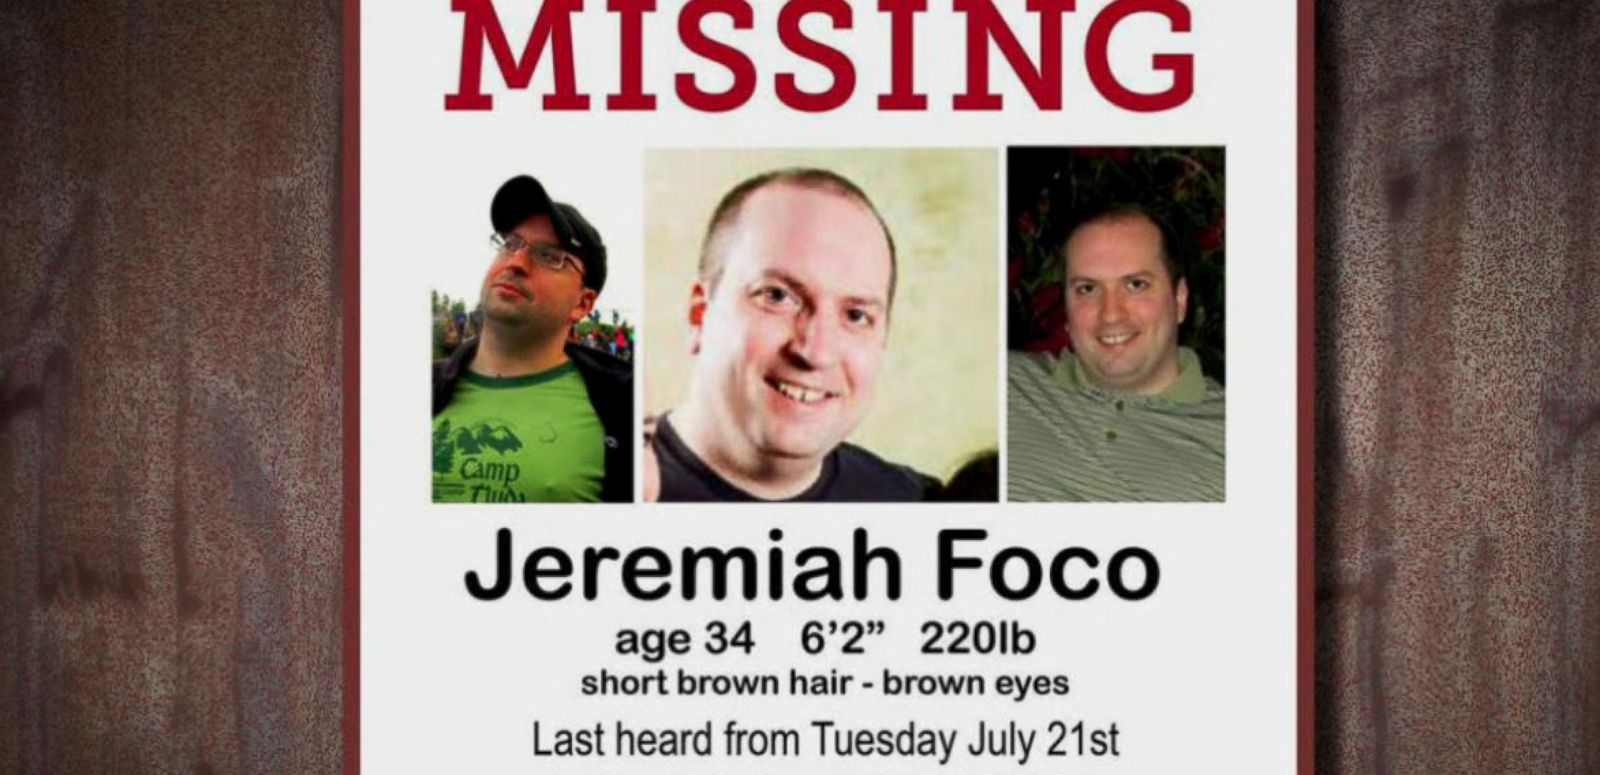 Search Intensifies for Missing Seattle Software Engineer